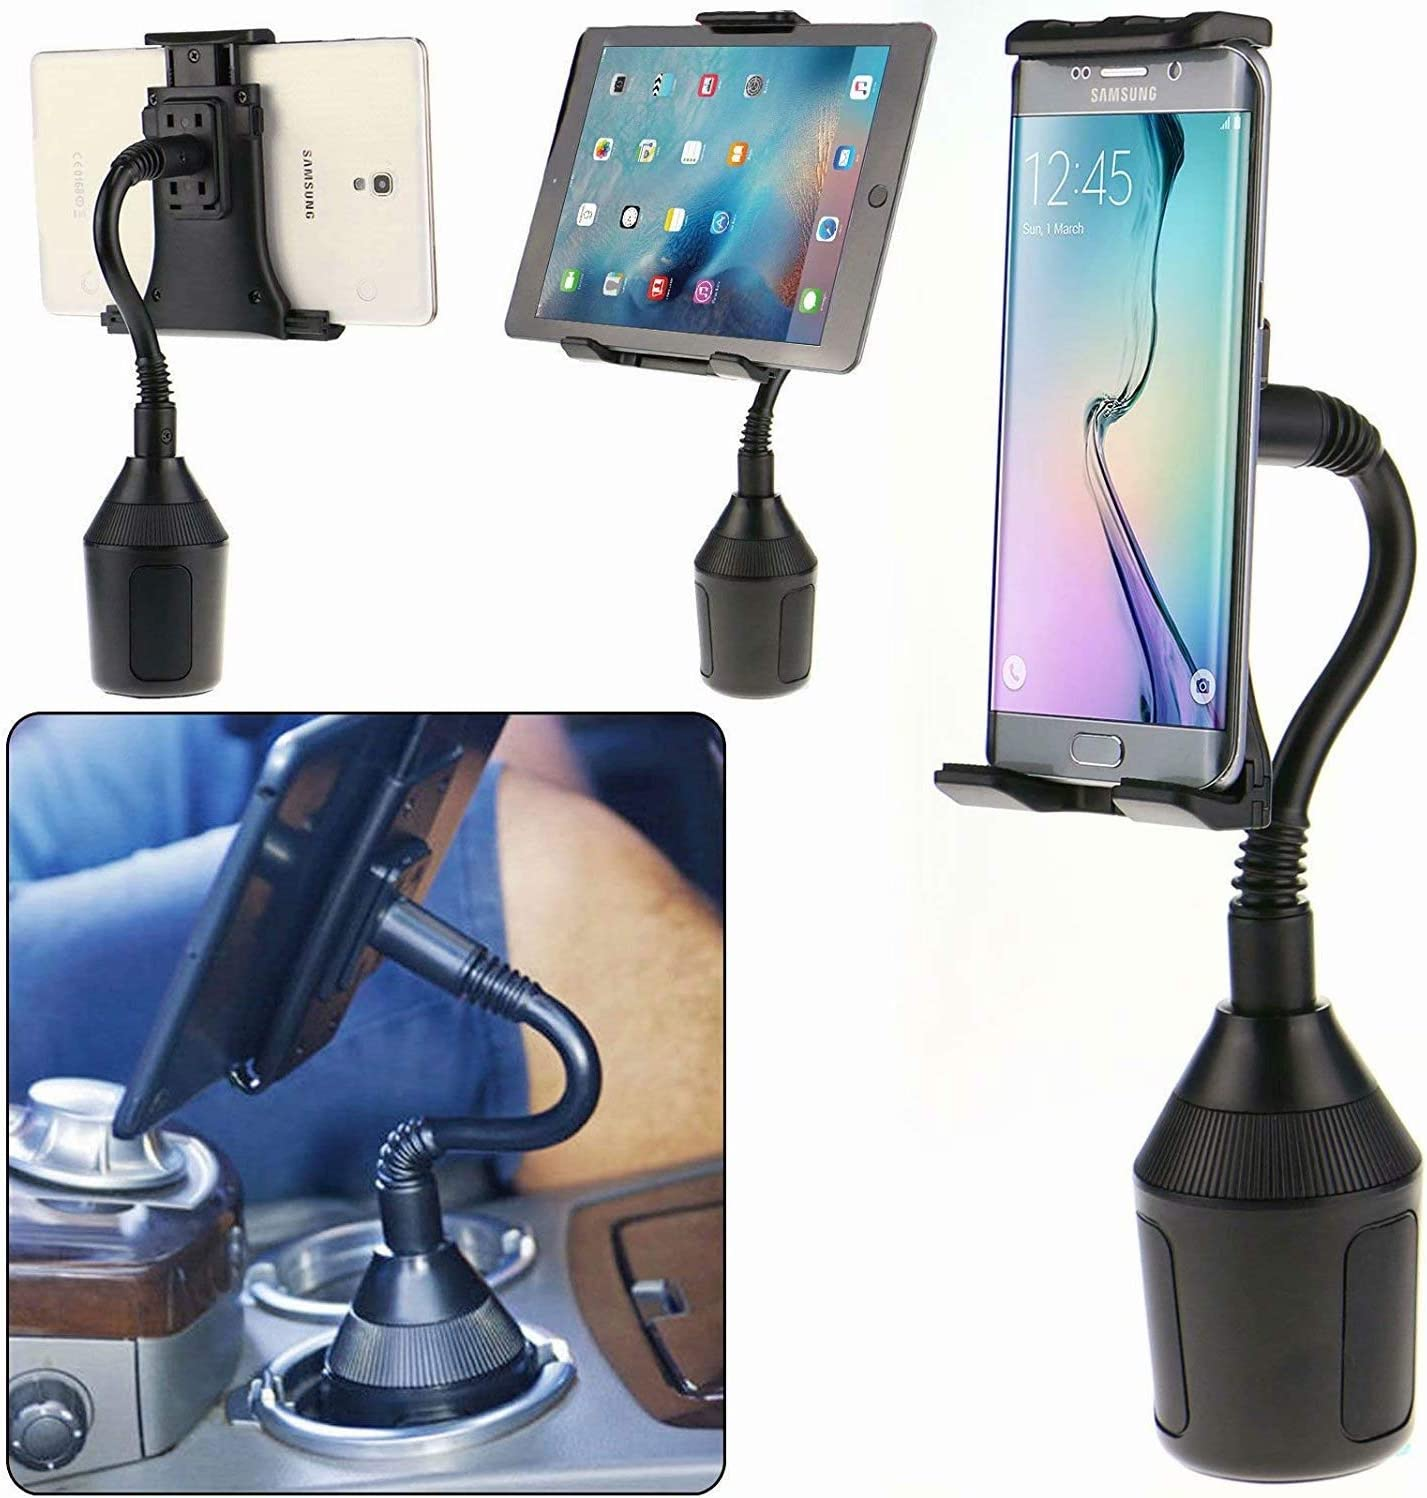 View 1 J4 G60 G8 Play E6 Play Smartphone Car Cup Holder Mount Phone Cradle Fit for Motorola Razr One Hyper One Action Z4 Moto G8 Plus E6 C5 Plus One Macro G70 BLU J6 E6 Plus One Zoom